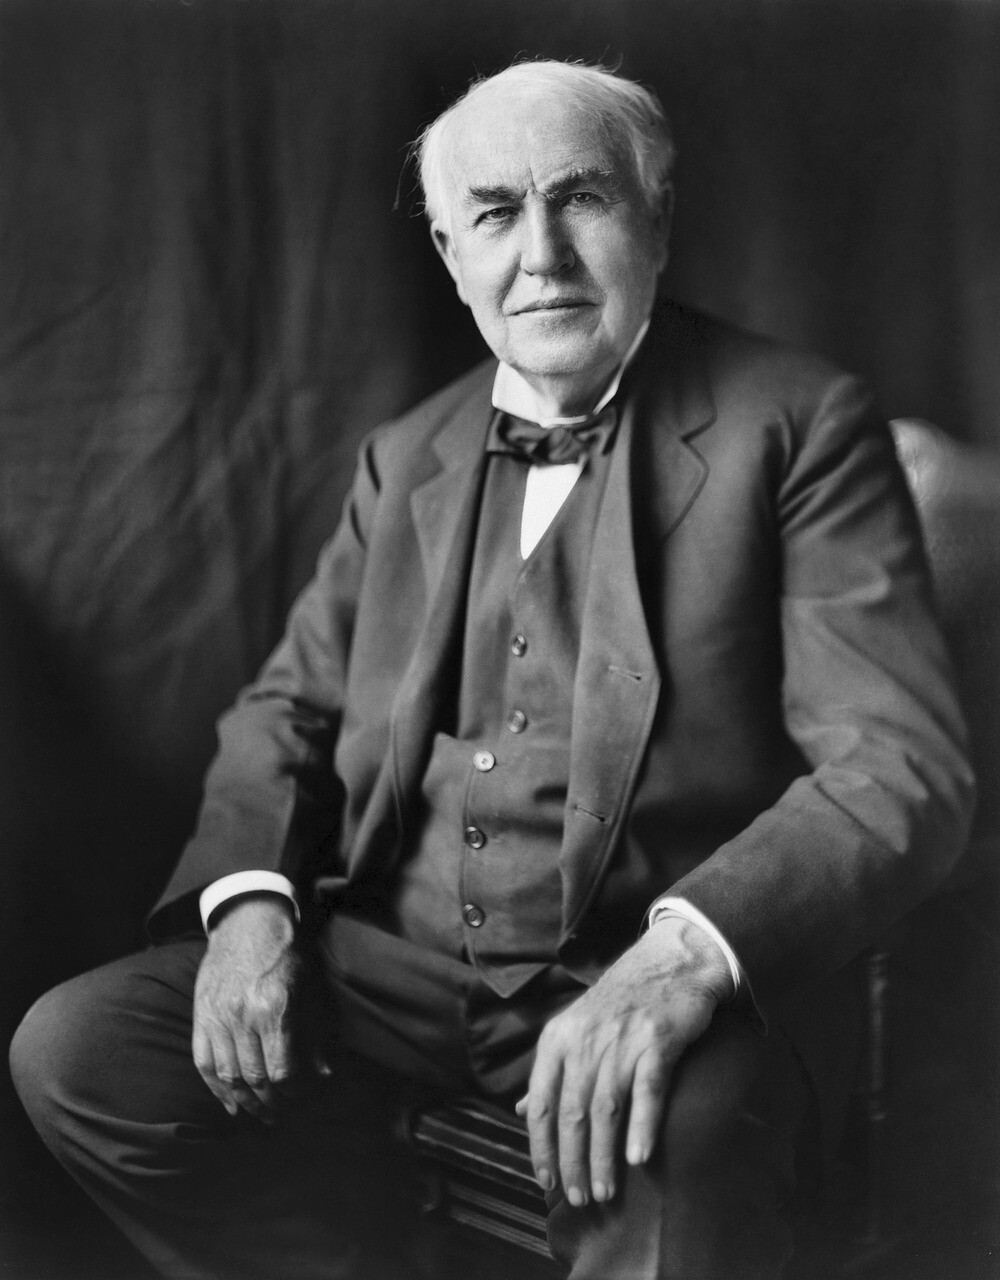 A picture of an elderly Thomas Edison posing for a photograph.